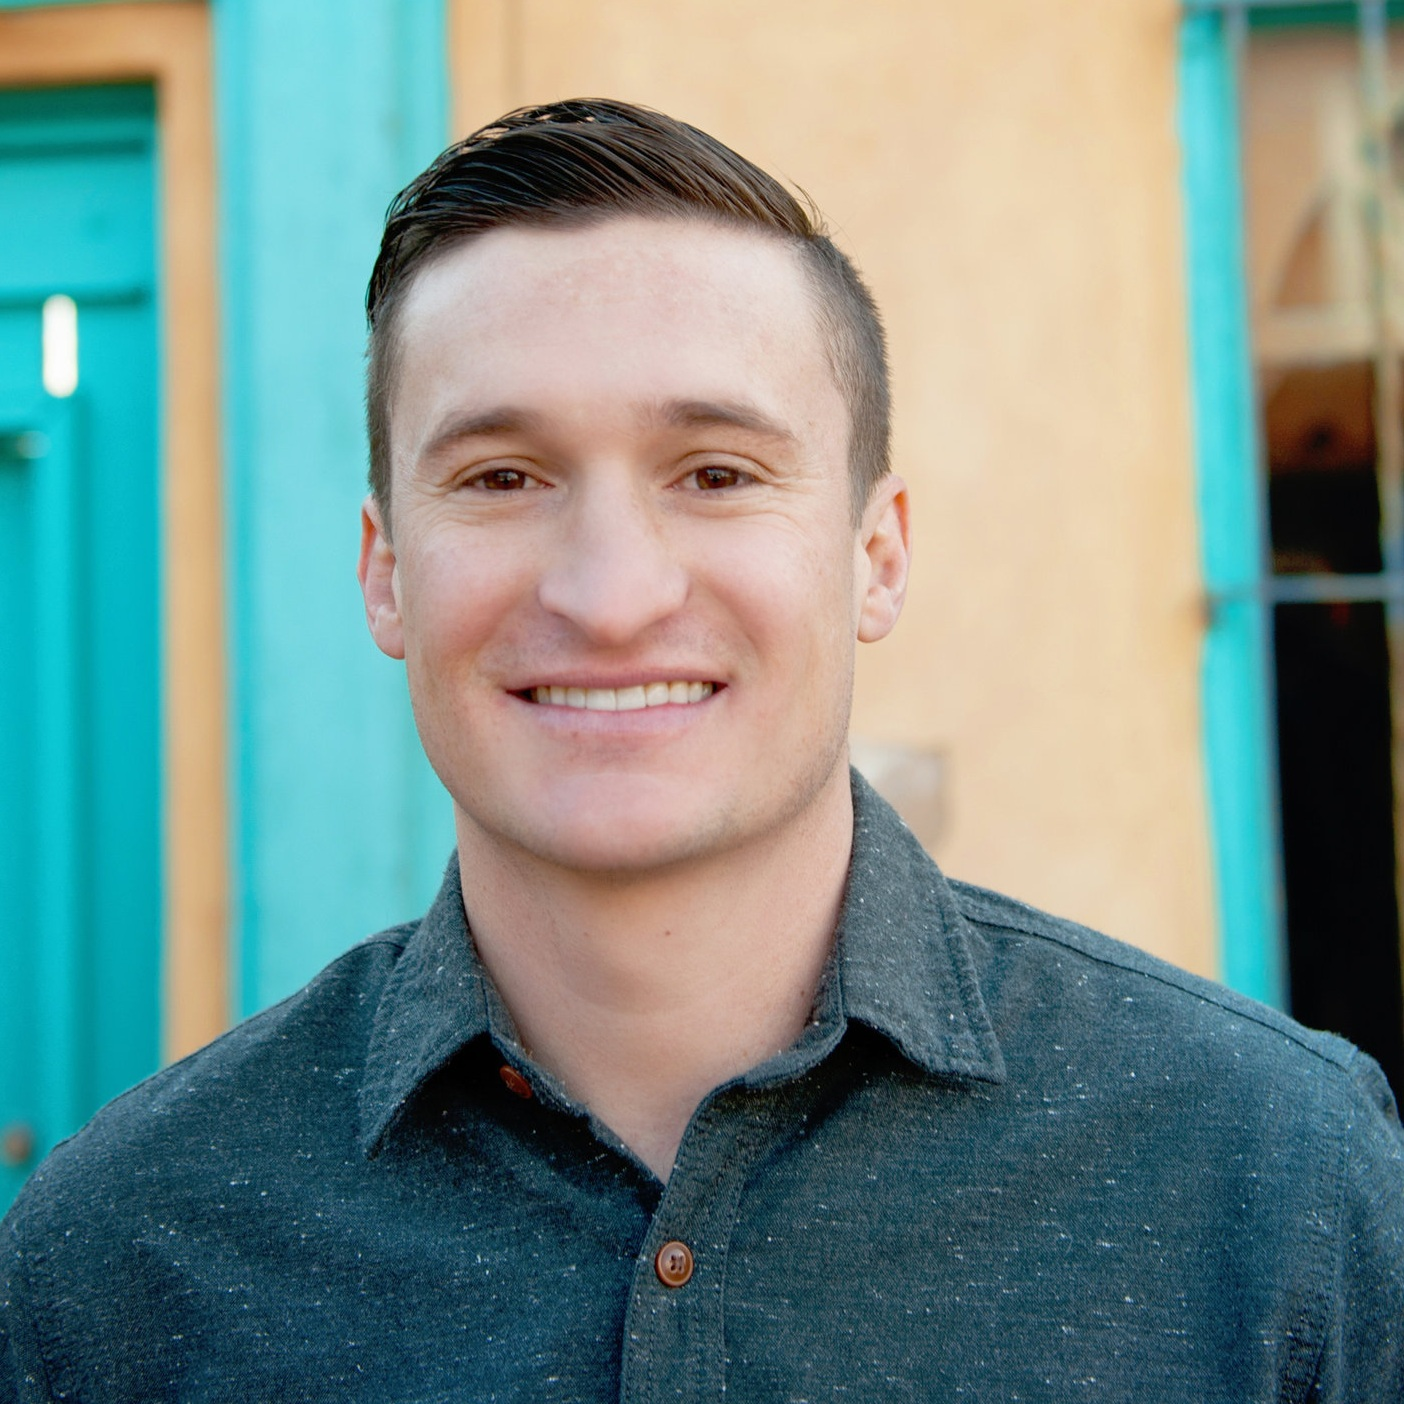 Kyle Henry, DMD - Dr. Henry is dedicated to providing high-quality dental care in a comfortable, family-friendly environment. Born and raised in Albuquerque, he received his undergraduate degree from the University of Mexico before earning his dental degree from the Arizona School of Dentistry & Oral Health in 2016. Dr. Henry has also completed a one-year advanced education in general studies at the University of New Mexico Hospital.